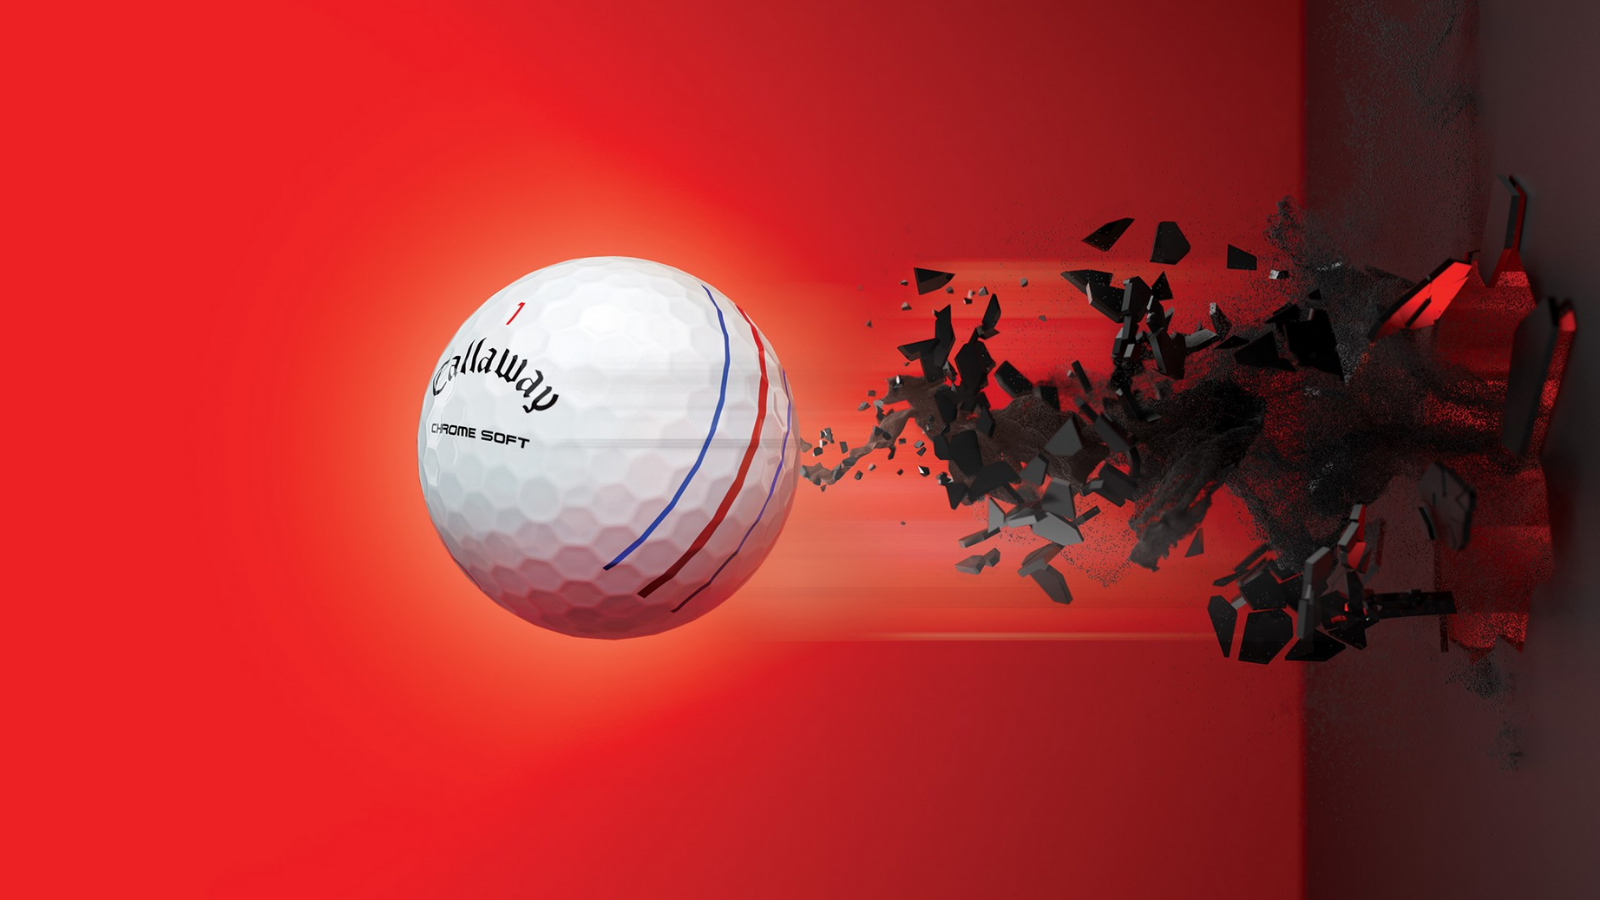 Cyber Monday 2020: The best golf deals from Callaway, Nike, Titleist and more